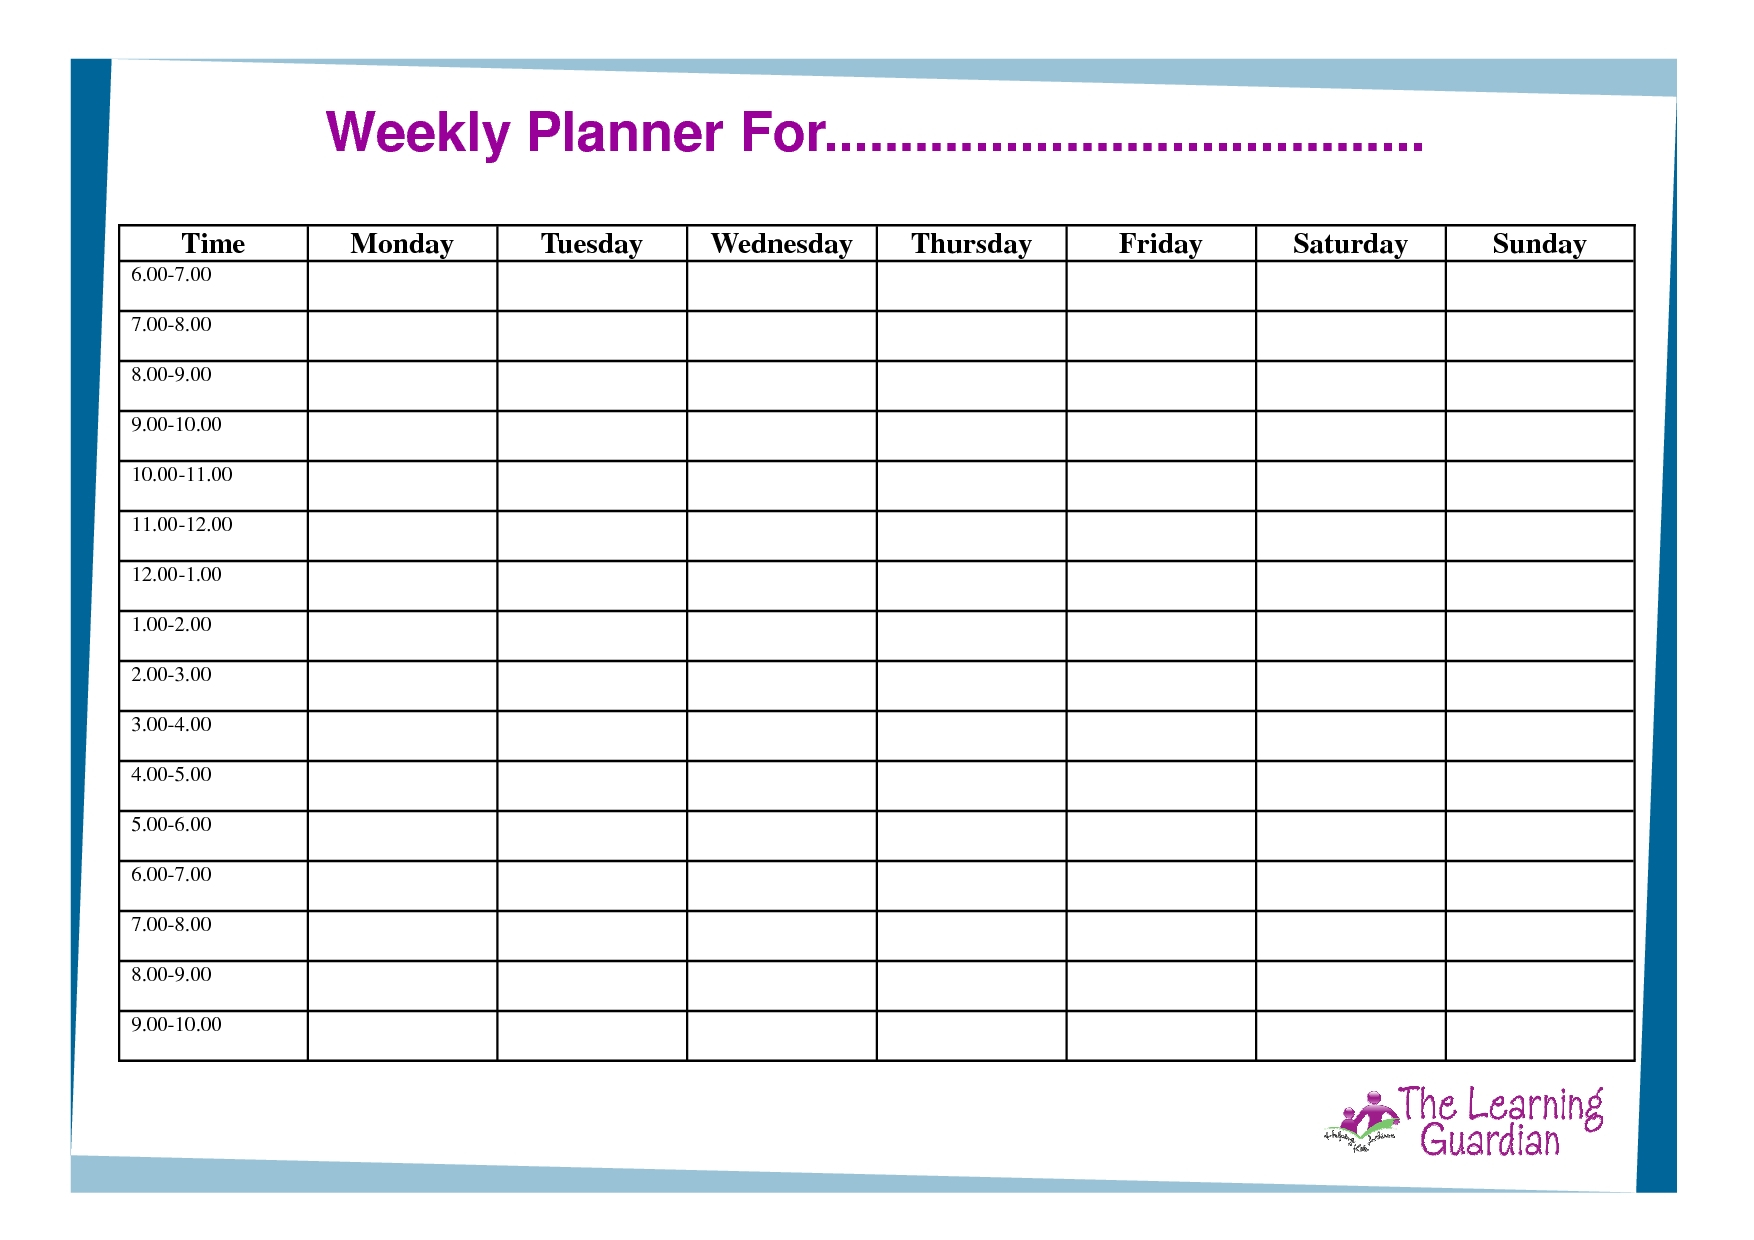 Weekly Planner With Time Slots Word Template - Calendar